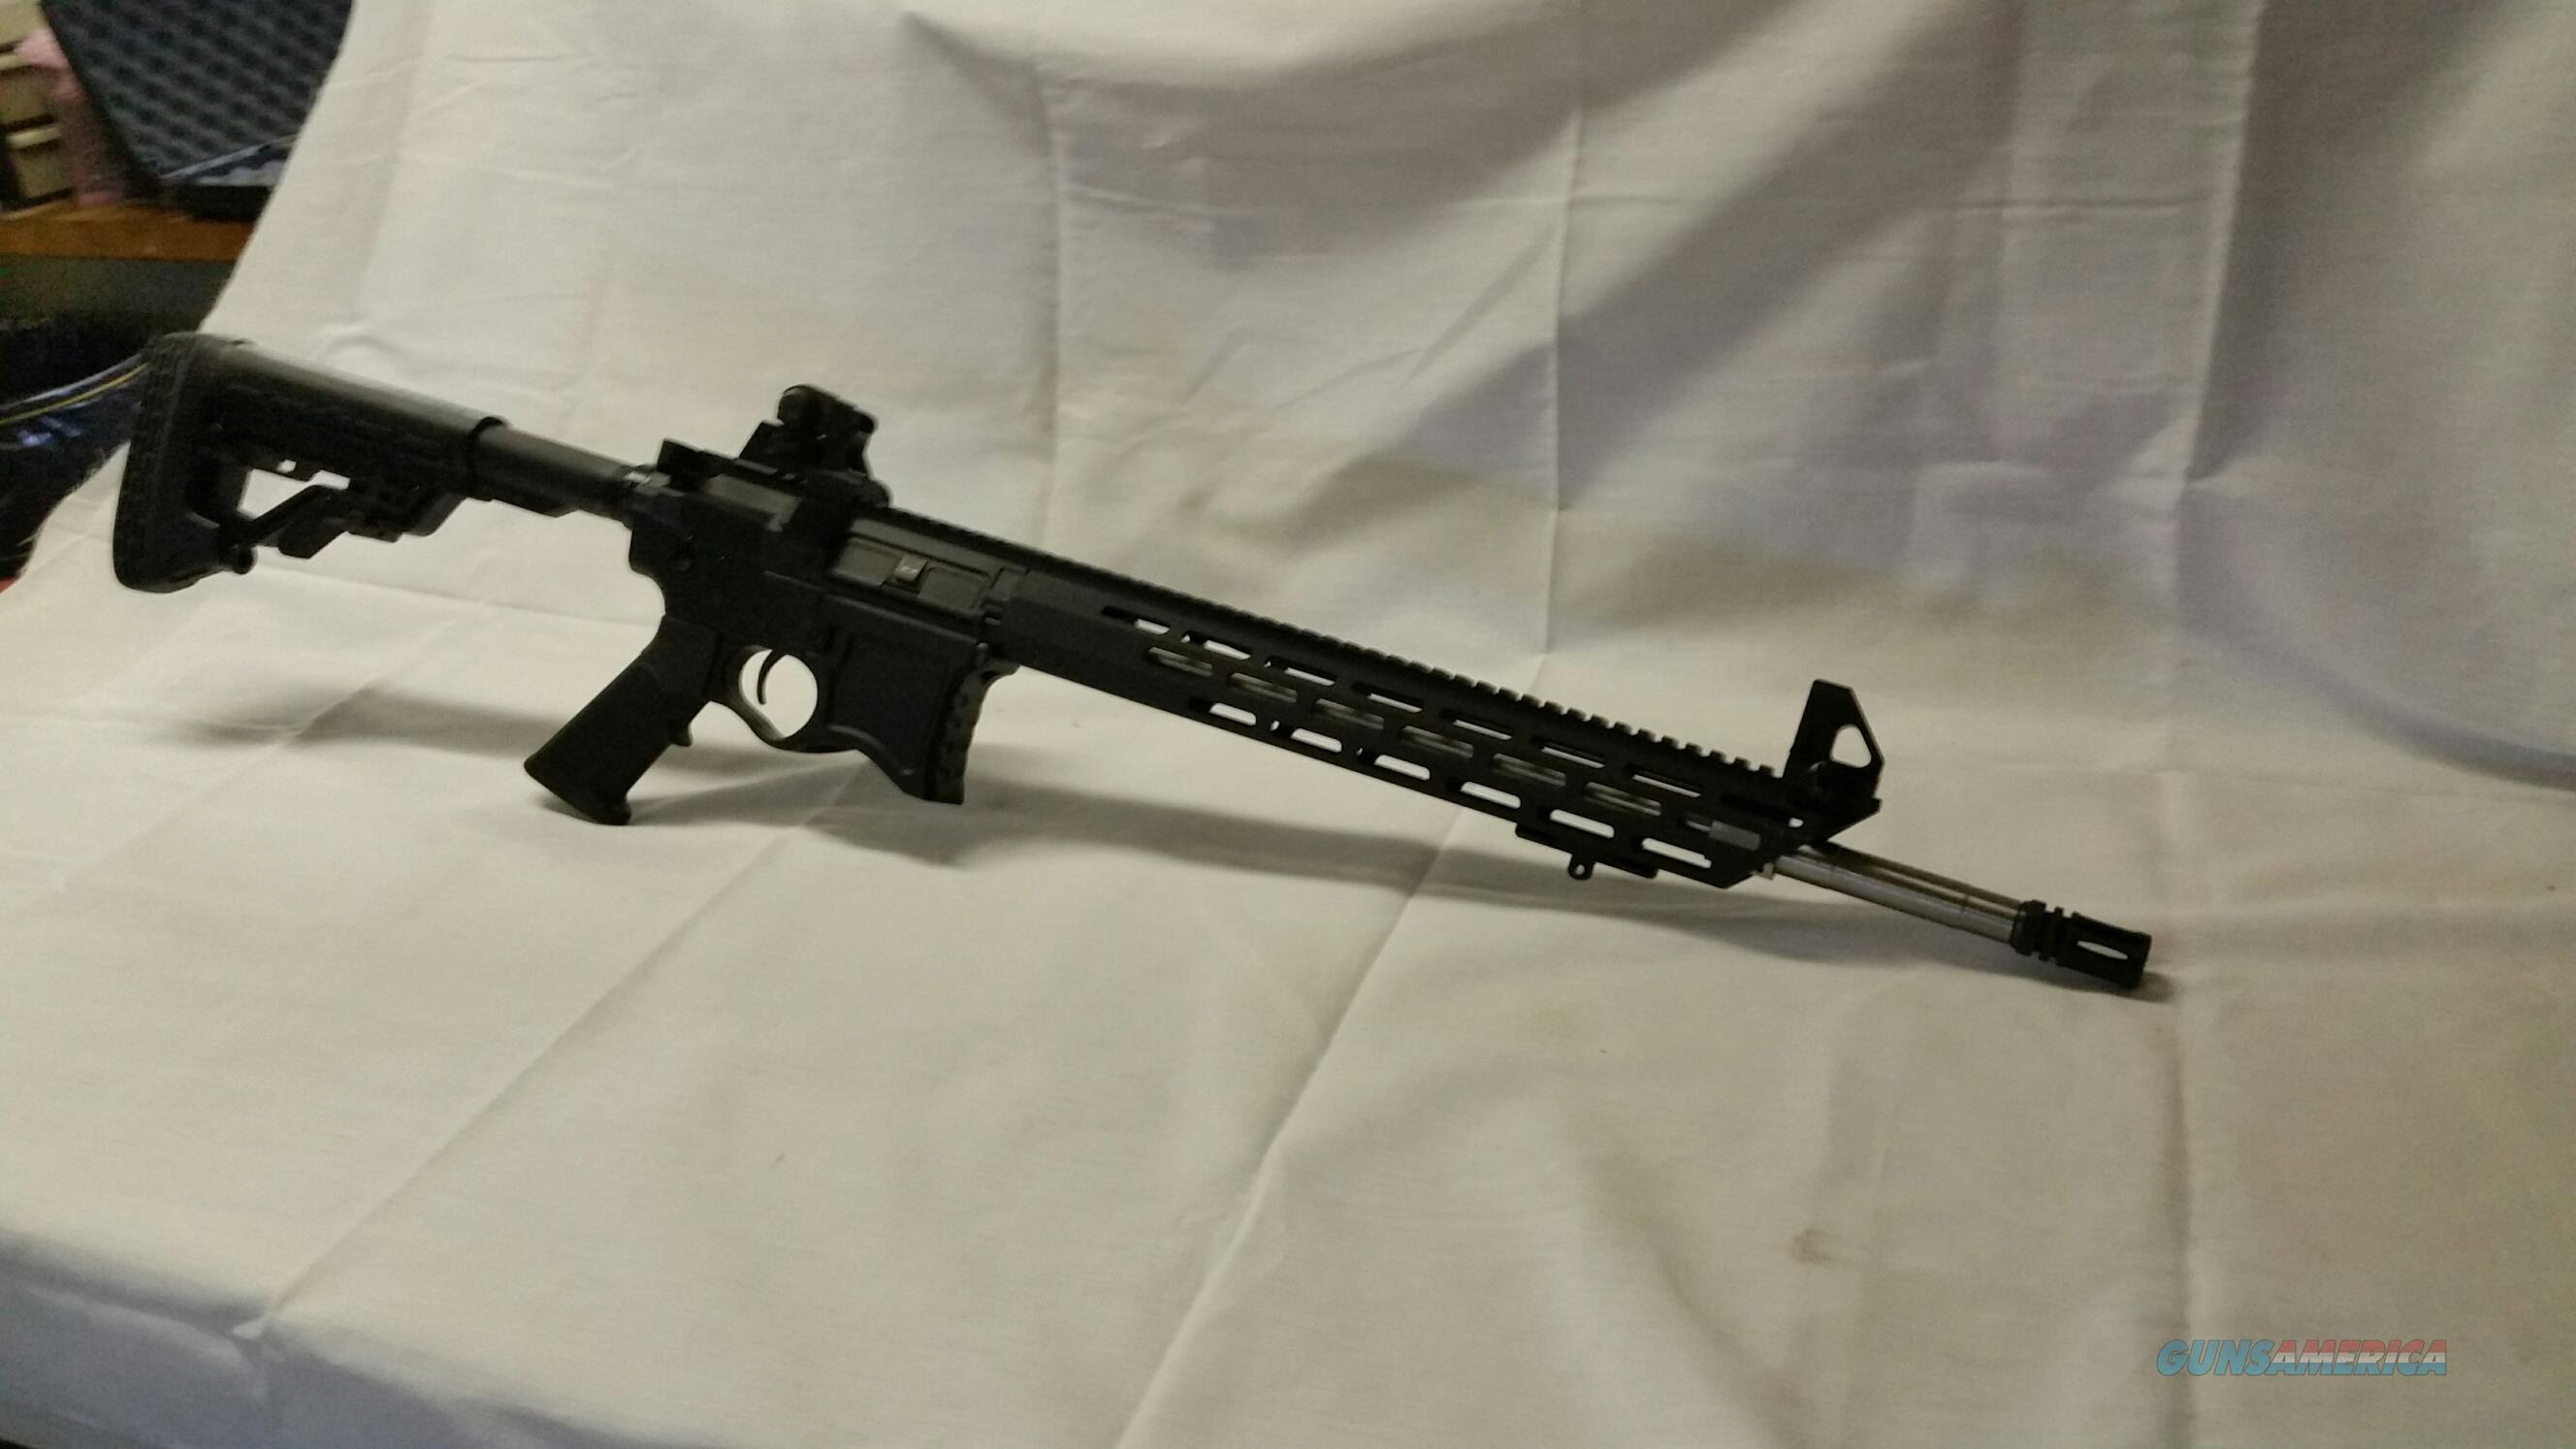 AR 15 5.56 Nato  Guns > Rifles > AR-15 Rifles - Small Manufacturers > Complete Rifle